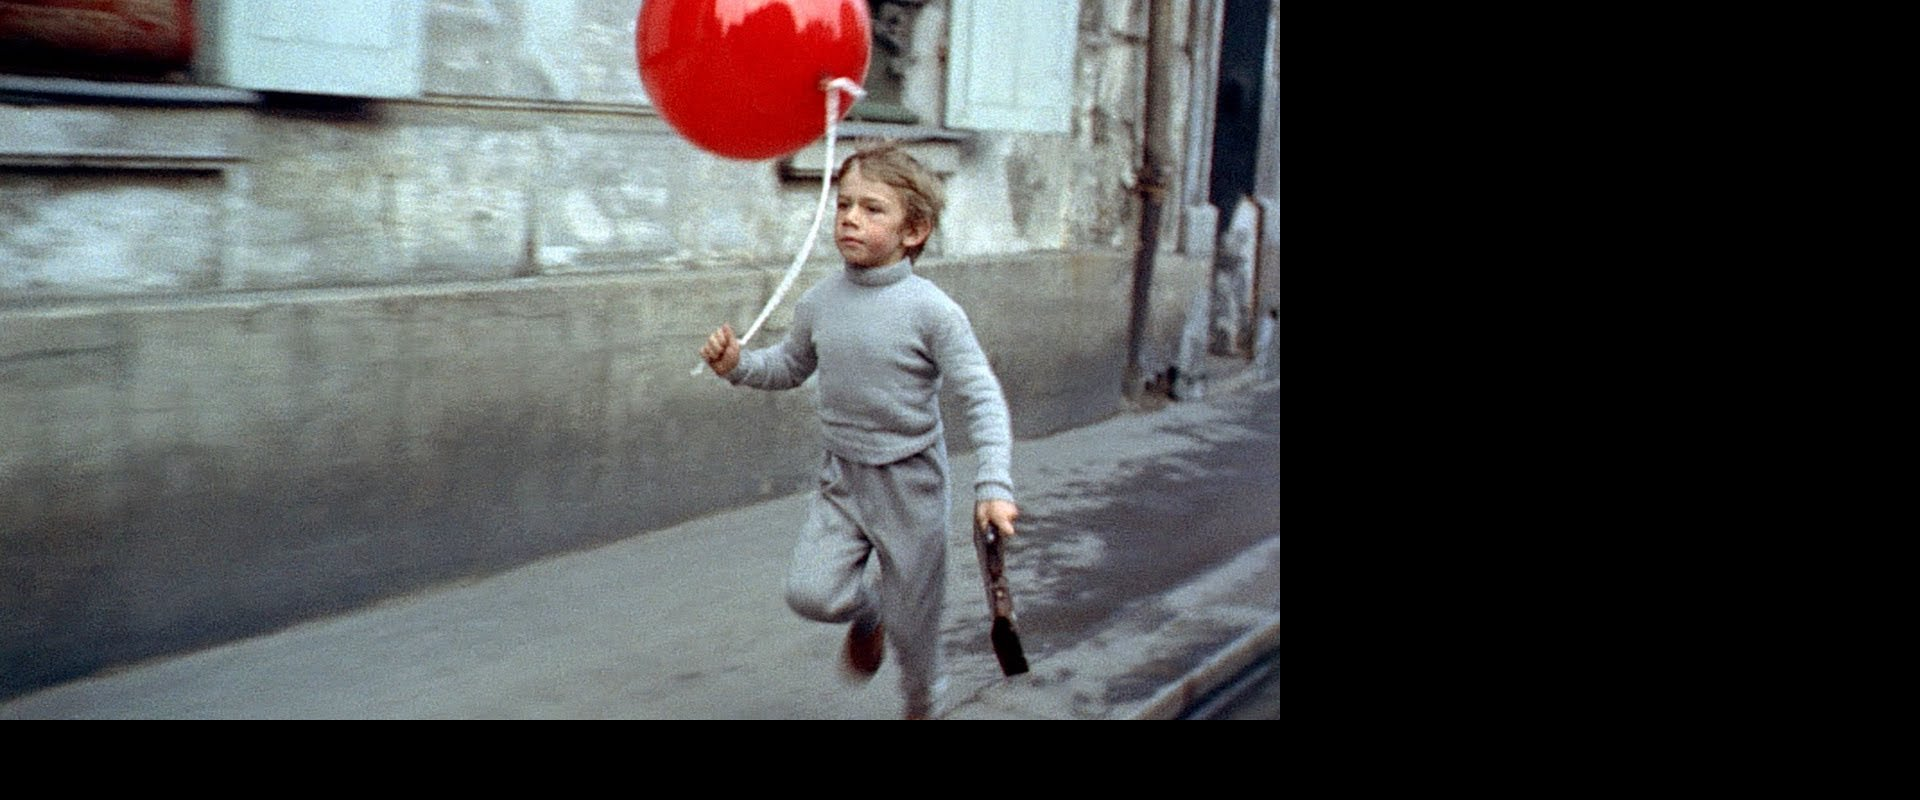 a boy, holding a red balloon is running down a street